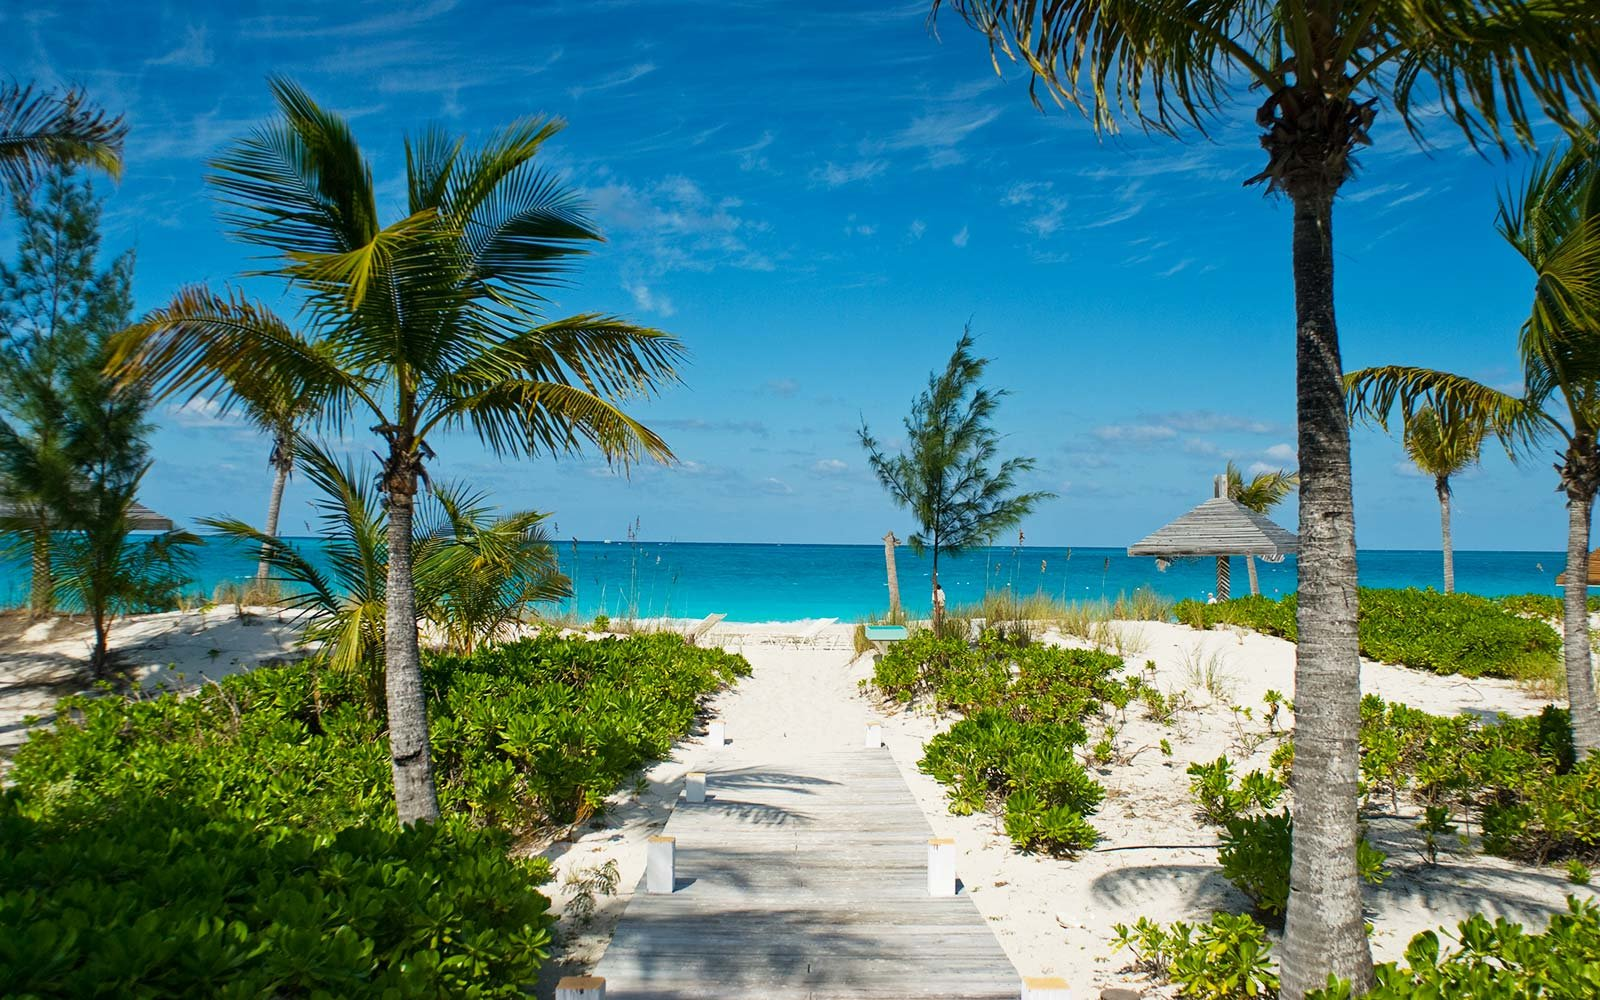 Turks and Caicos Caribbean